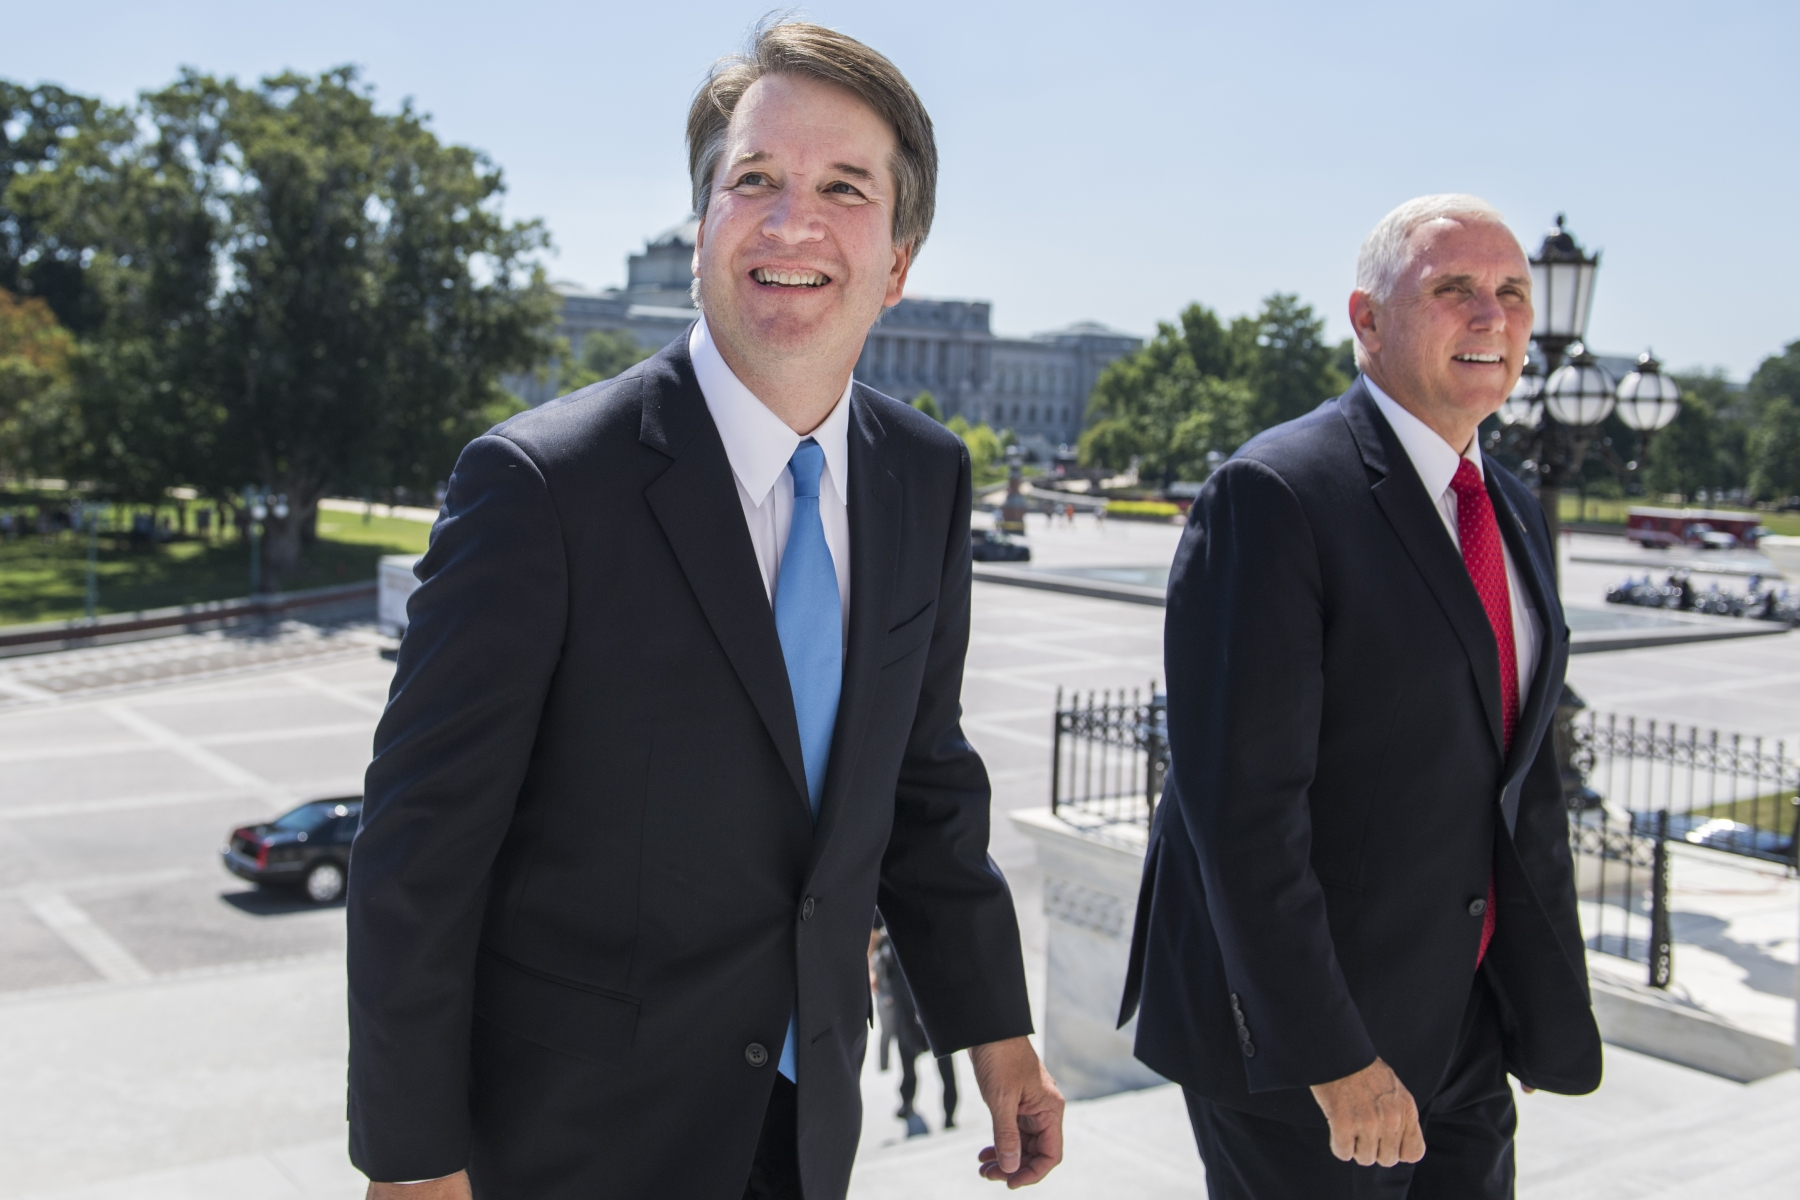 July 10, 2018 - Washington, District of Columbia, U.S. - UNITED District of ColumbiaS - JULY 10: Supreme Court nominee Brett Kavanaugh, left, walks up the the Capitol's Senate steps with Vice President Mike Pence for a meeting with Senate Majority Leader Mitch McConnell, R-Ky., on July 10, 2018. (Photo By Tom Williams/CQ Roll Call) (Credit Image: © Tom Williams/Congressional Quarterly/Newscom via ZUMA Press)